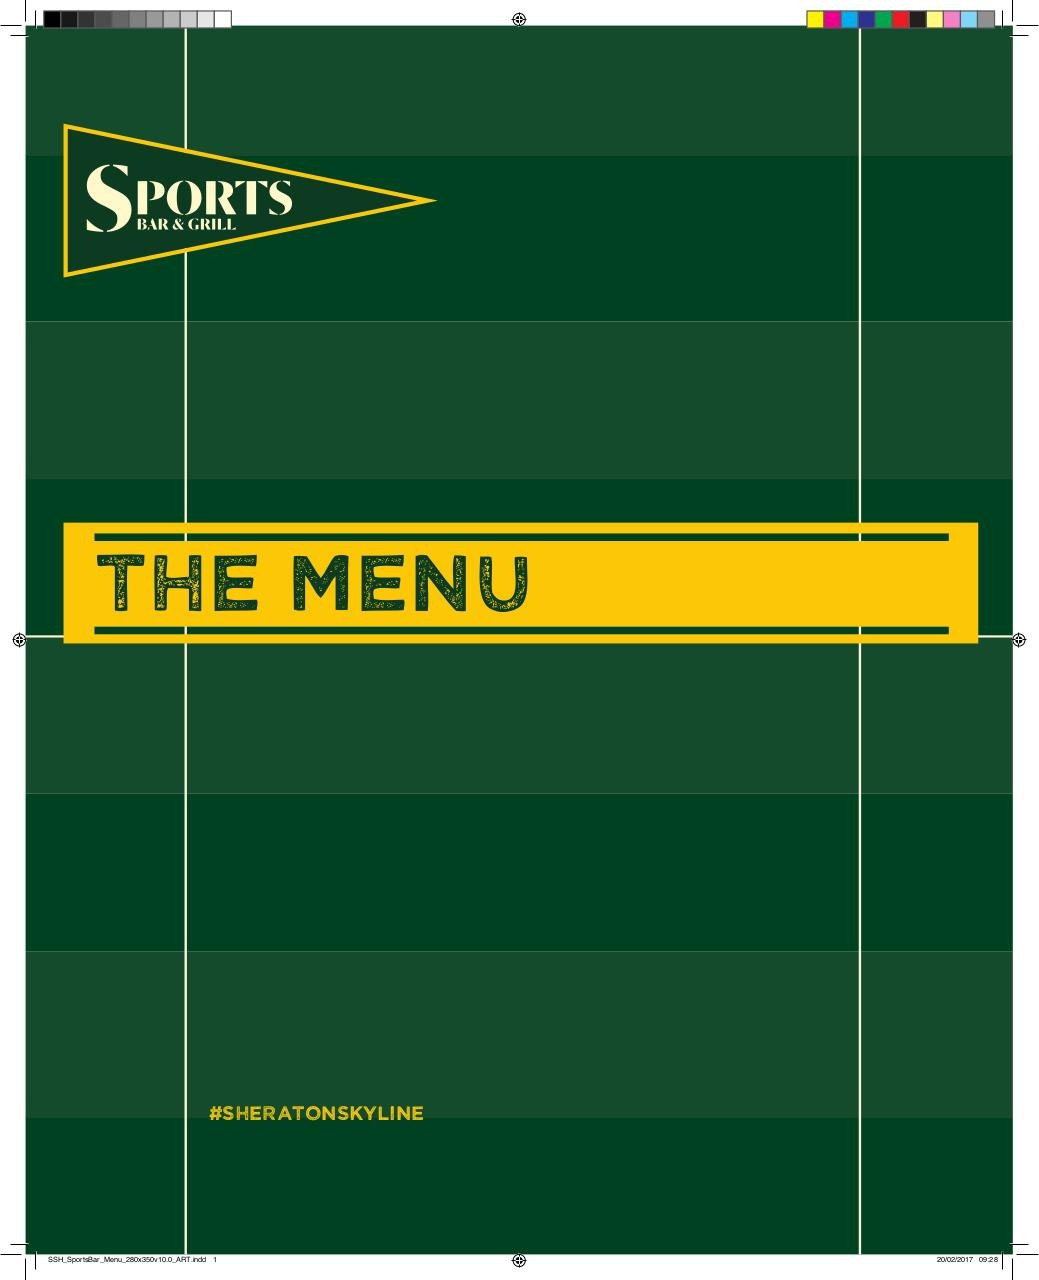 SSH_SportsBar_Menu_280x350v10.0_ART - Copy.pdf - page 1/4